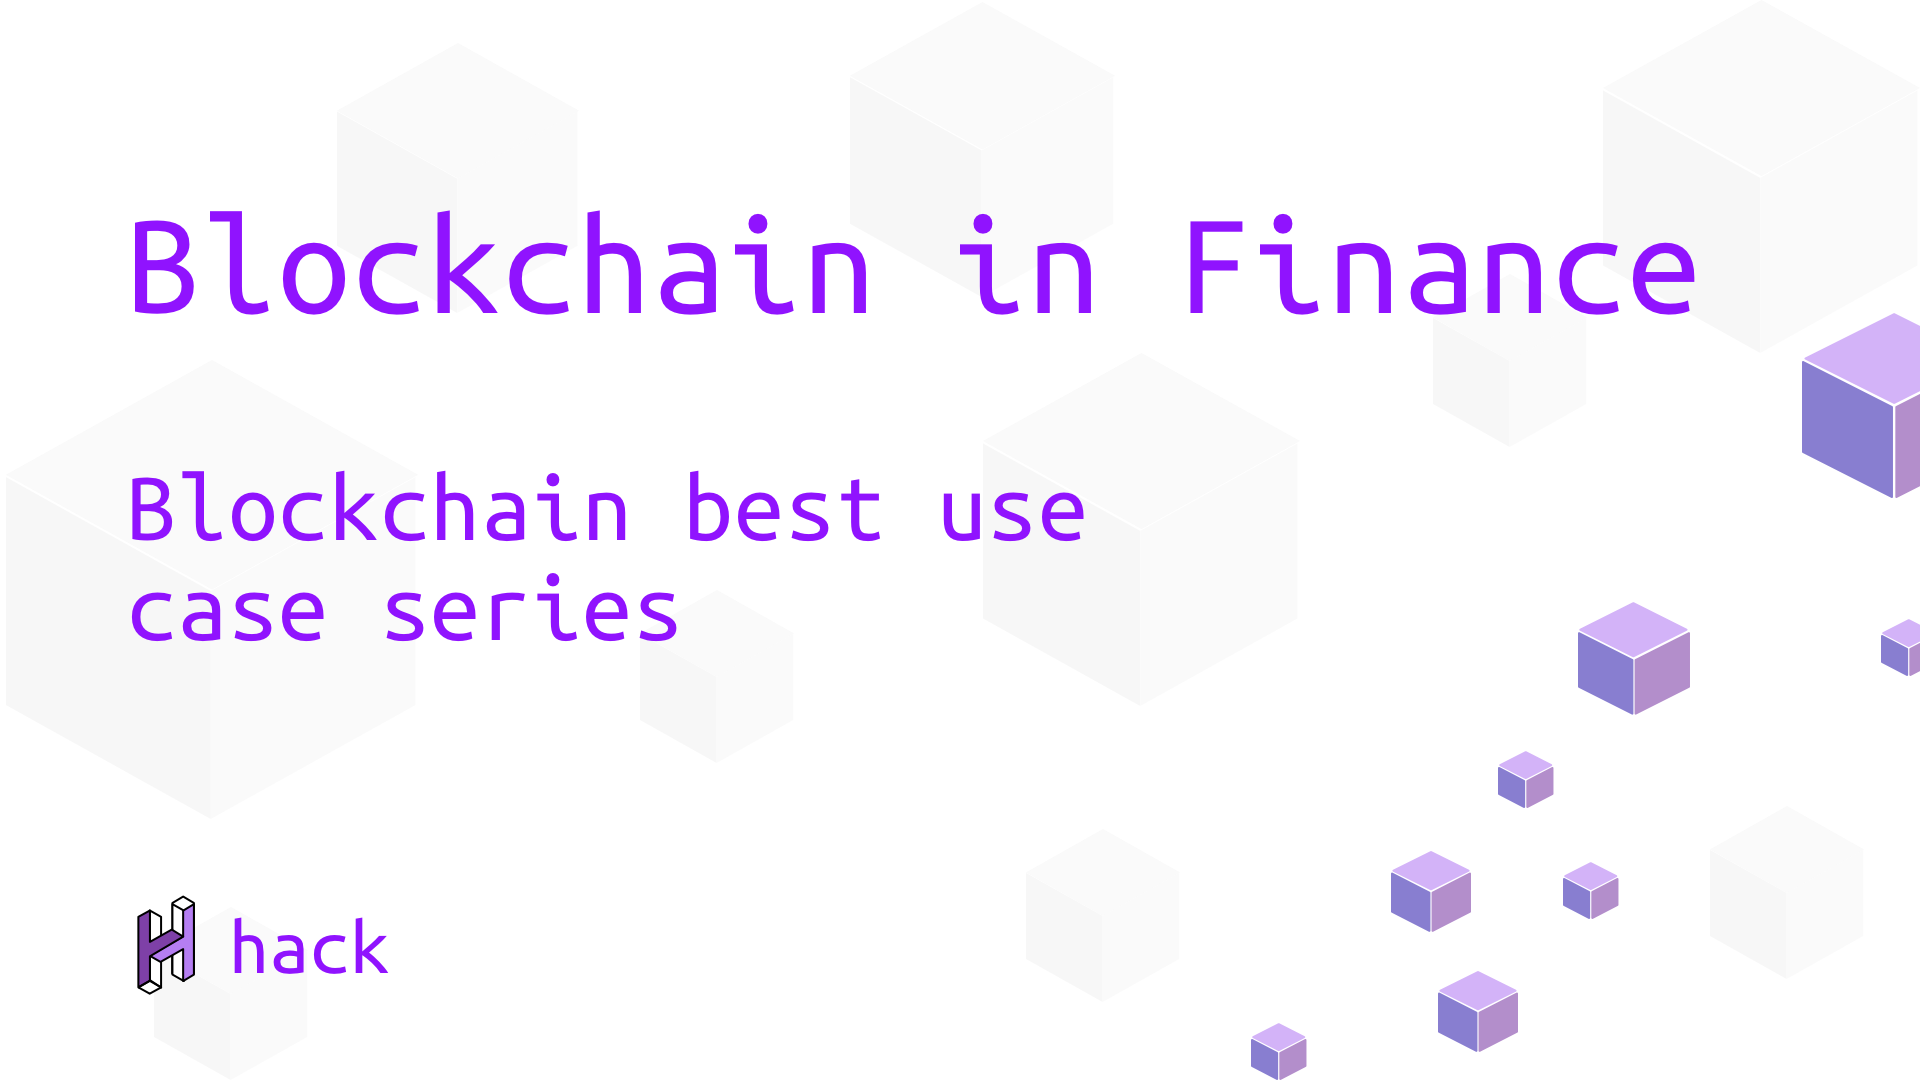 Blockchain in finance - Best blockchain use cases